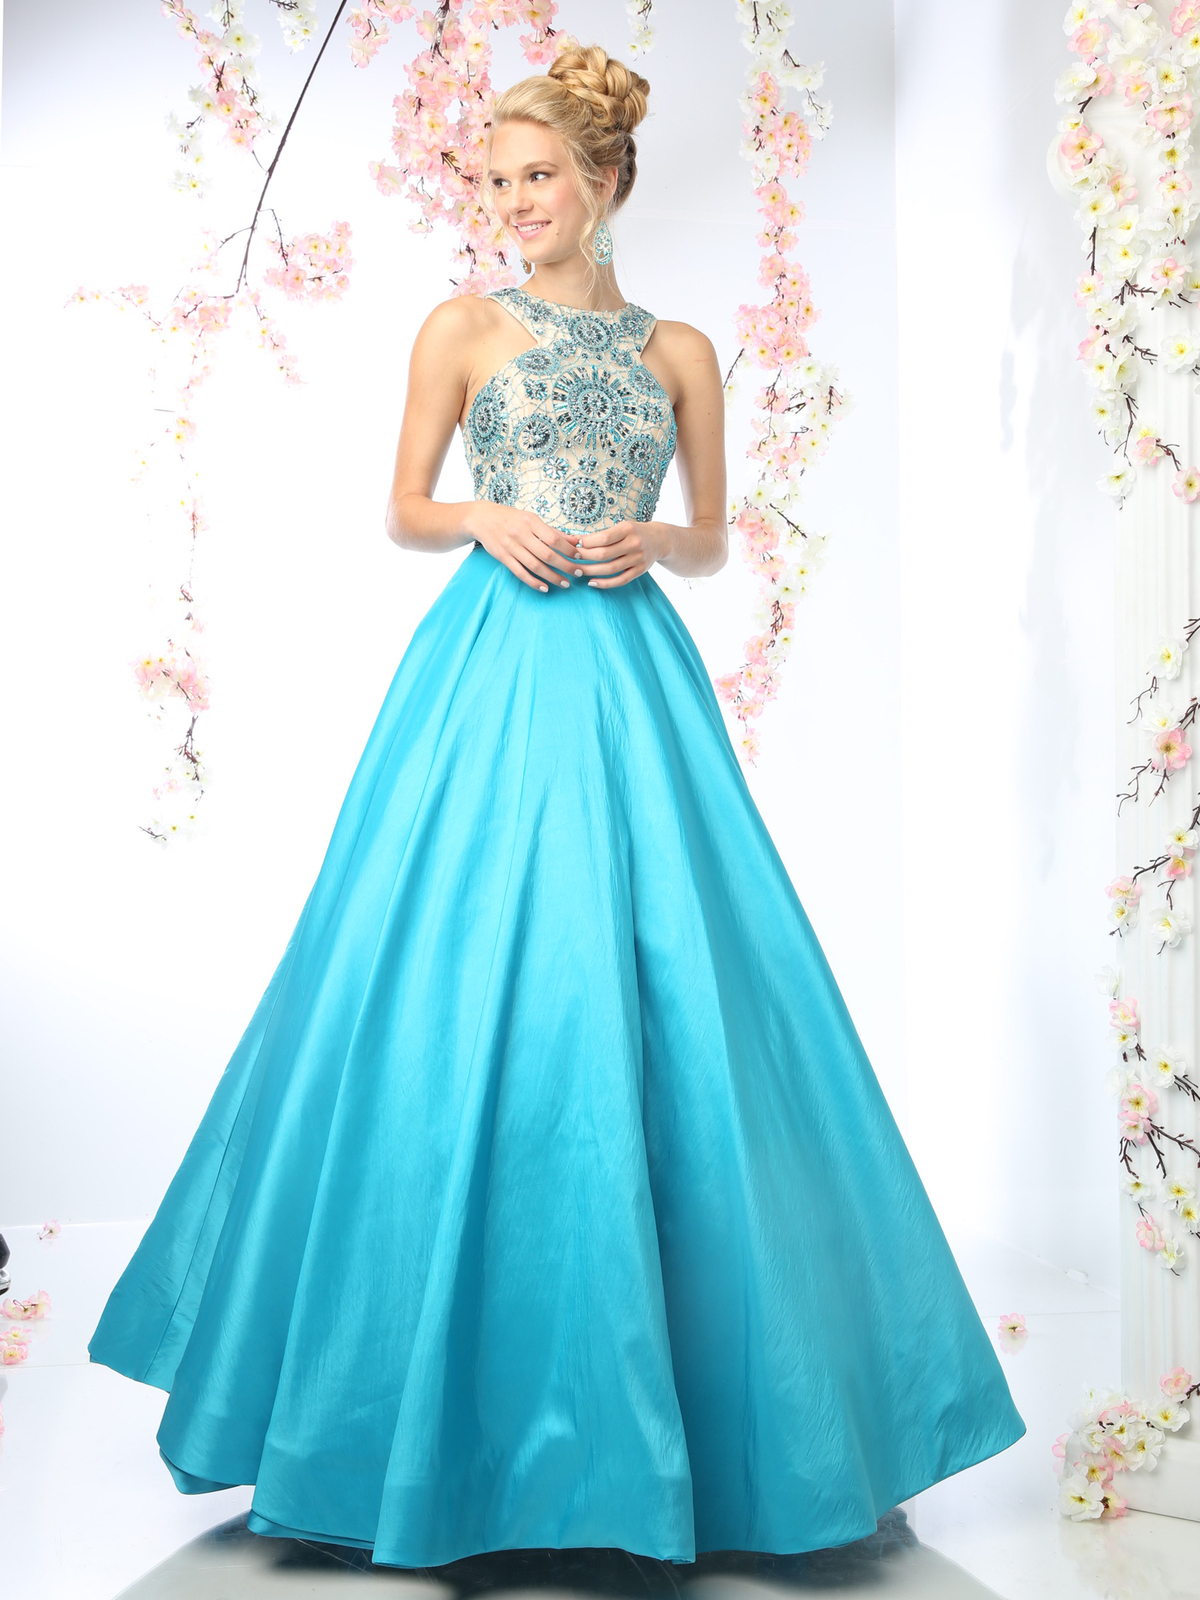 Elegant Prom Gown With Full Skirt Sung Boutique L A